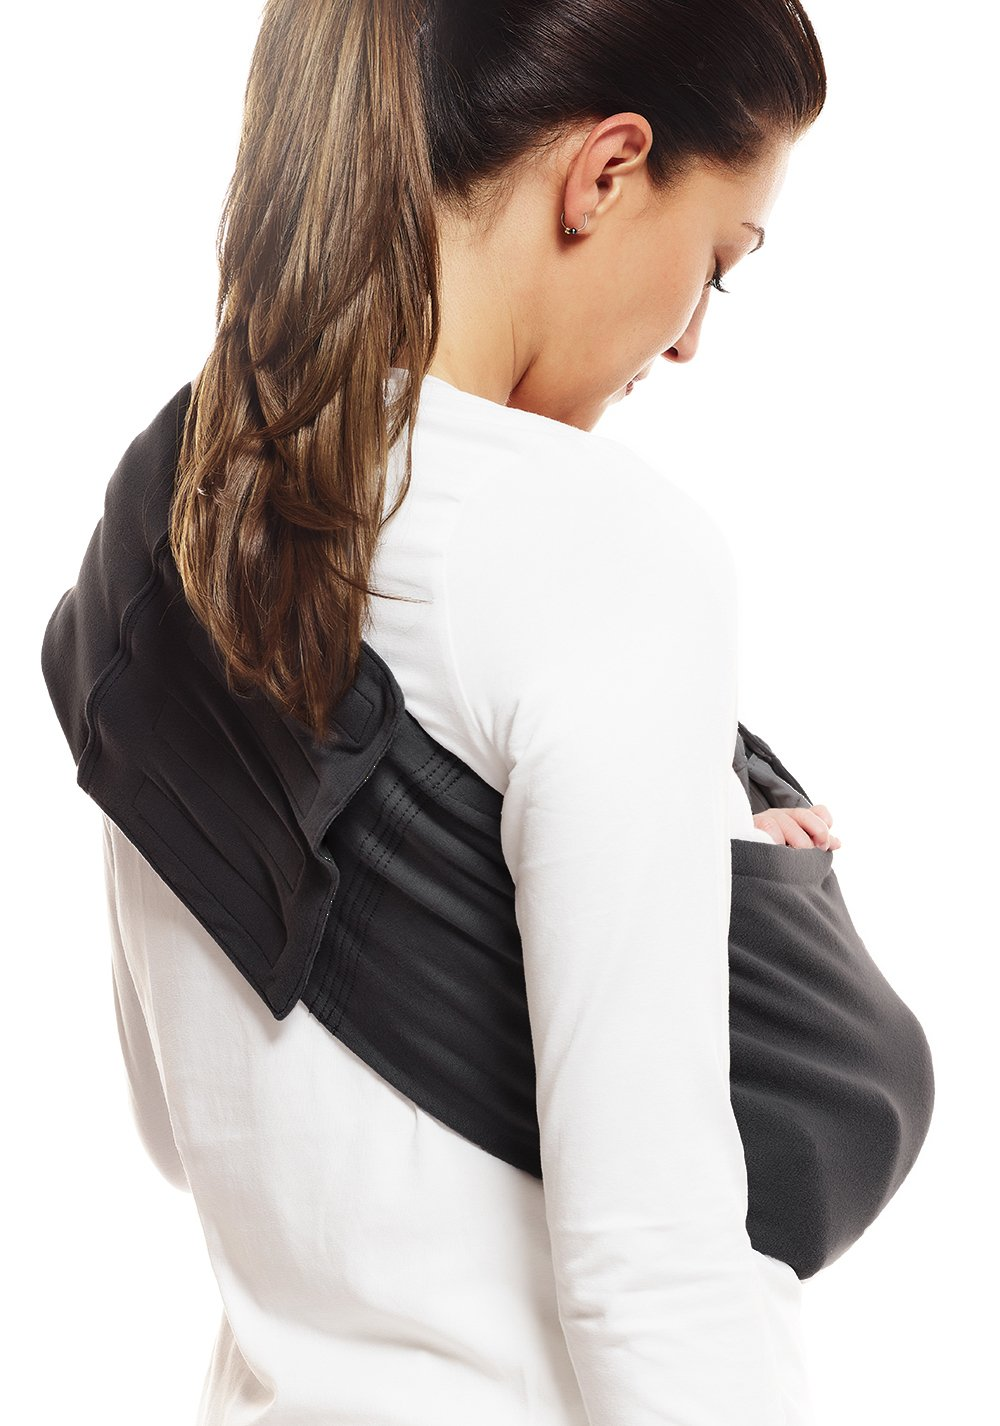 Wallaboo Wrap Sling Carrier Connection, Easy Adjustable, Ergonomic, 3 Carrying Positions, Newborn 8lbs to 33 lbs, Soft Breathable Cotton, 3 Sitting Positions, EU Safety Tested, Color: Black Wallaboo Ergonomically correct design with three natural positions: sleep, sit and active - one size fits all Can be used from premature baby through to 33lbs - with easy-to-use features like a full-front opening and an adjustable back Single piece of fabric, no straps, belts or buckles - Partly padded to give extra comfort - No wrapping, no hardware. Ready to wear 9